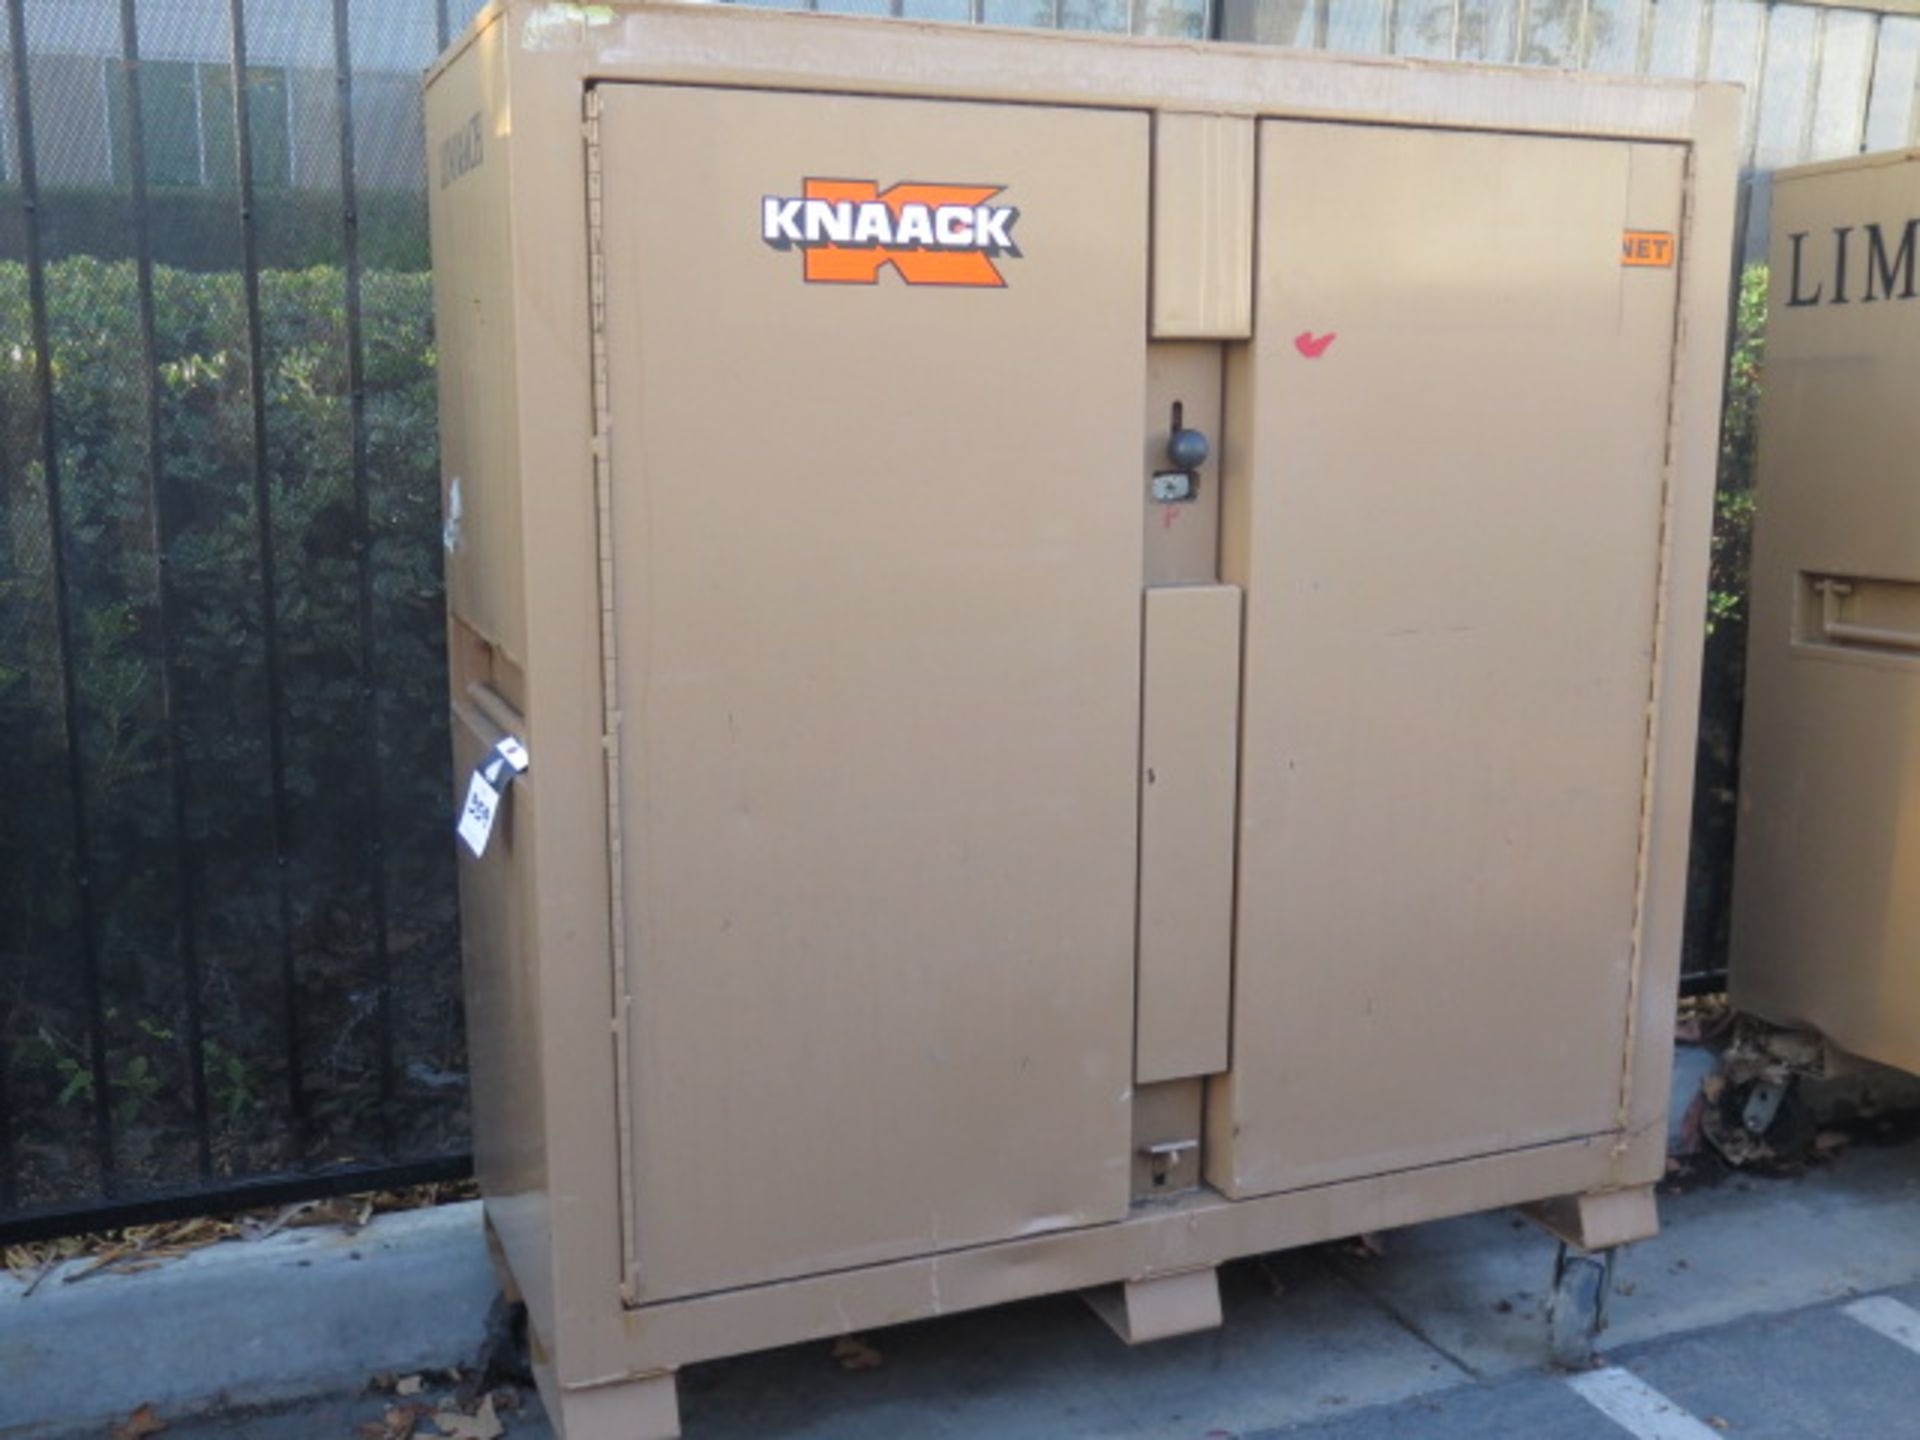 Knaack 109 Jobmaster Rolling Job Box w/ Safety Supplies (SOLD AS-IS - NO WARRANTY)